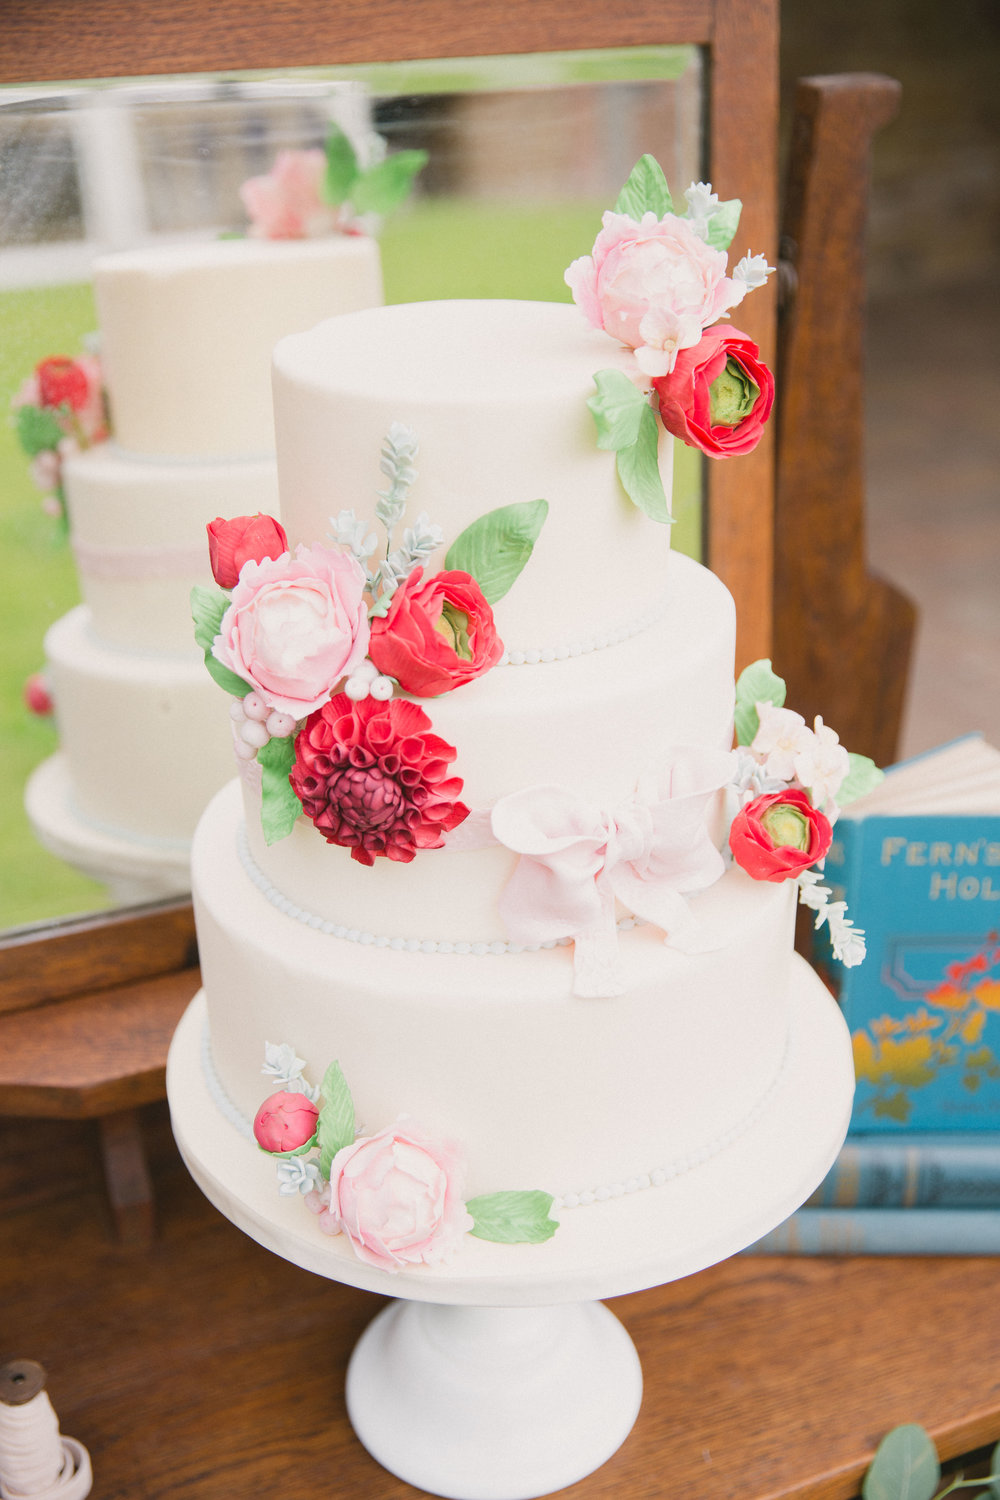 Something Borrowed ( Photography Credit to Rebecca Holiday- Wild Rose Photography and Styling my Vintage Amy Three tier ivory fondant finished wedding cake with vibrant sugar dahlias, ranunculus and pastel pink peonies. Serves 70 £400